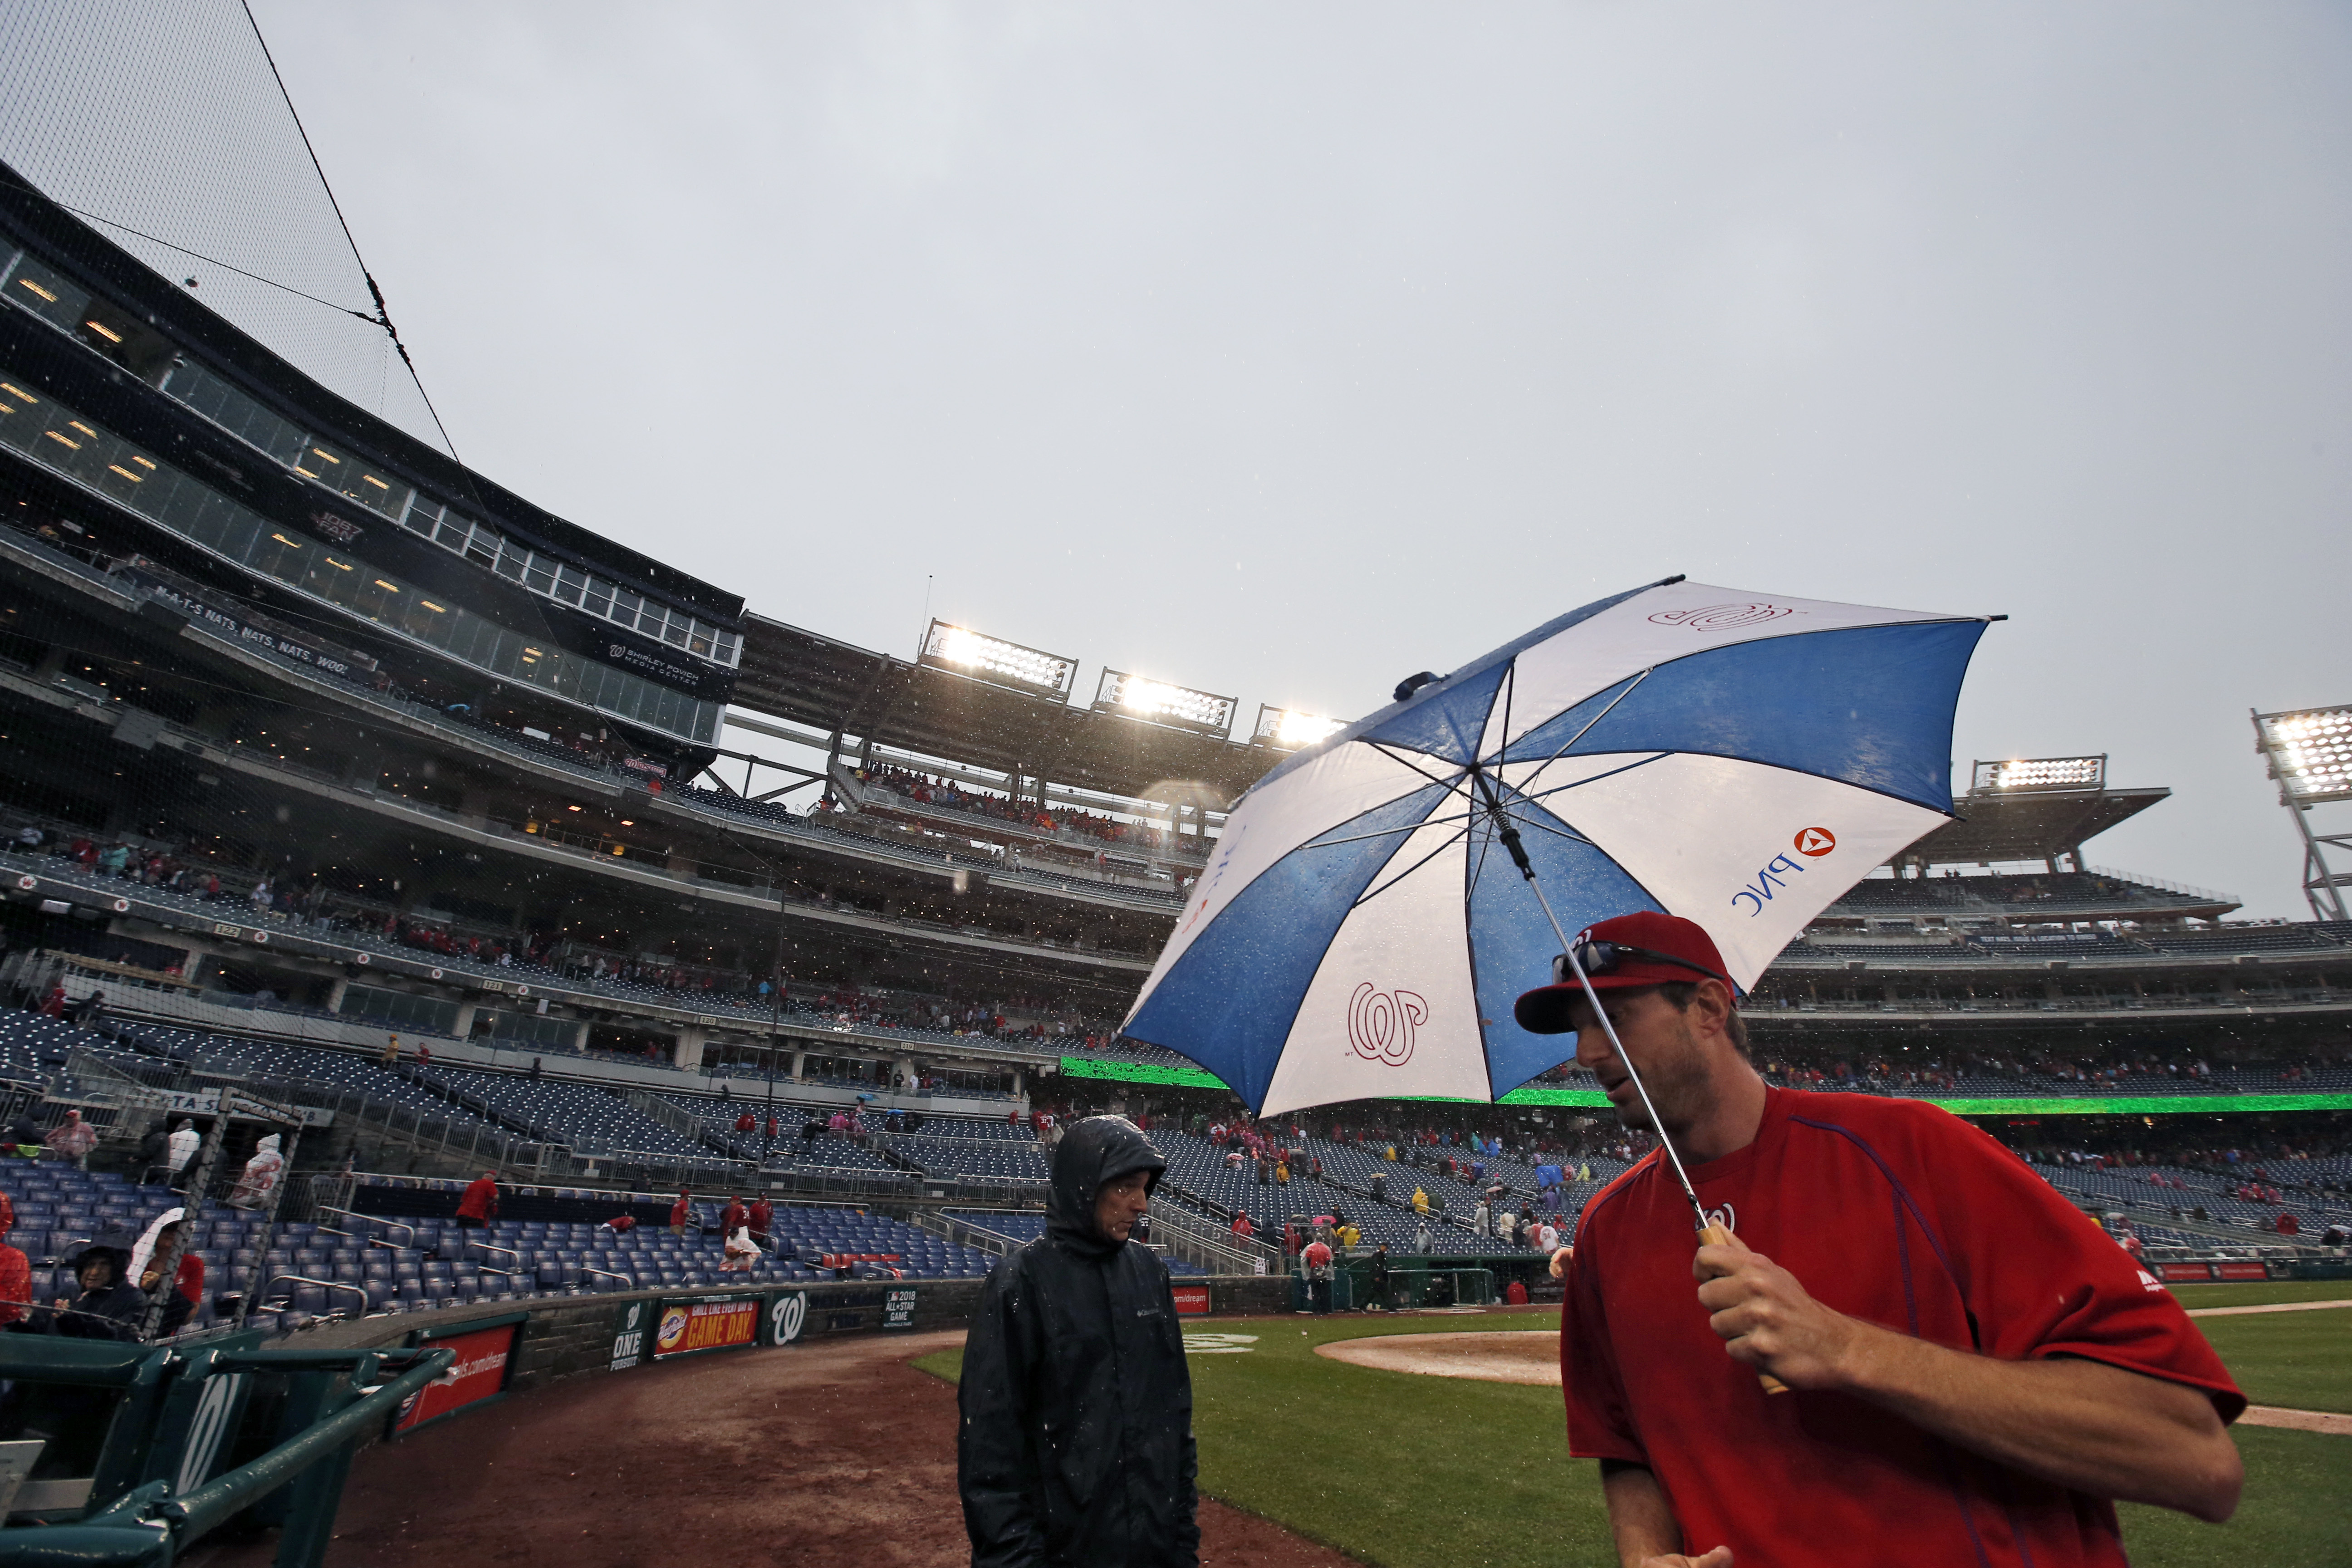 Washington Nationals starting pitcher Max Scherzer uses an umbrella to go the field in the rain after the first baseball game of a split doubleheader against the Miami Marlins at Nationals Park, Saturday, May 14, 2016, in Washington. (AP Photo/Alex Brando